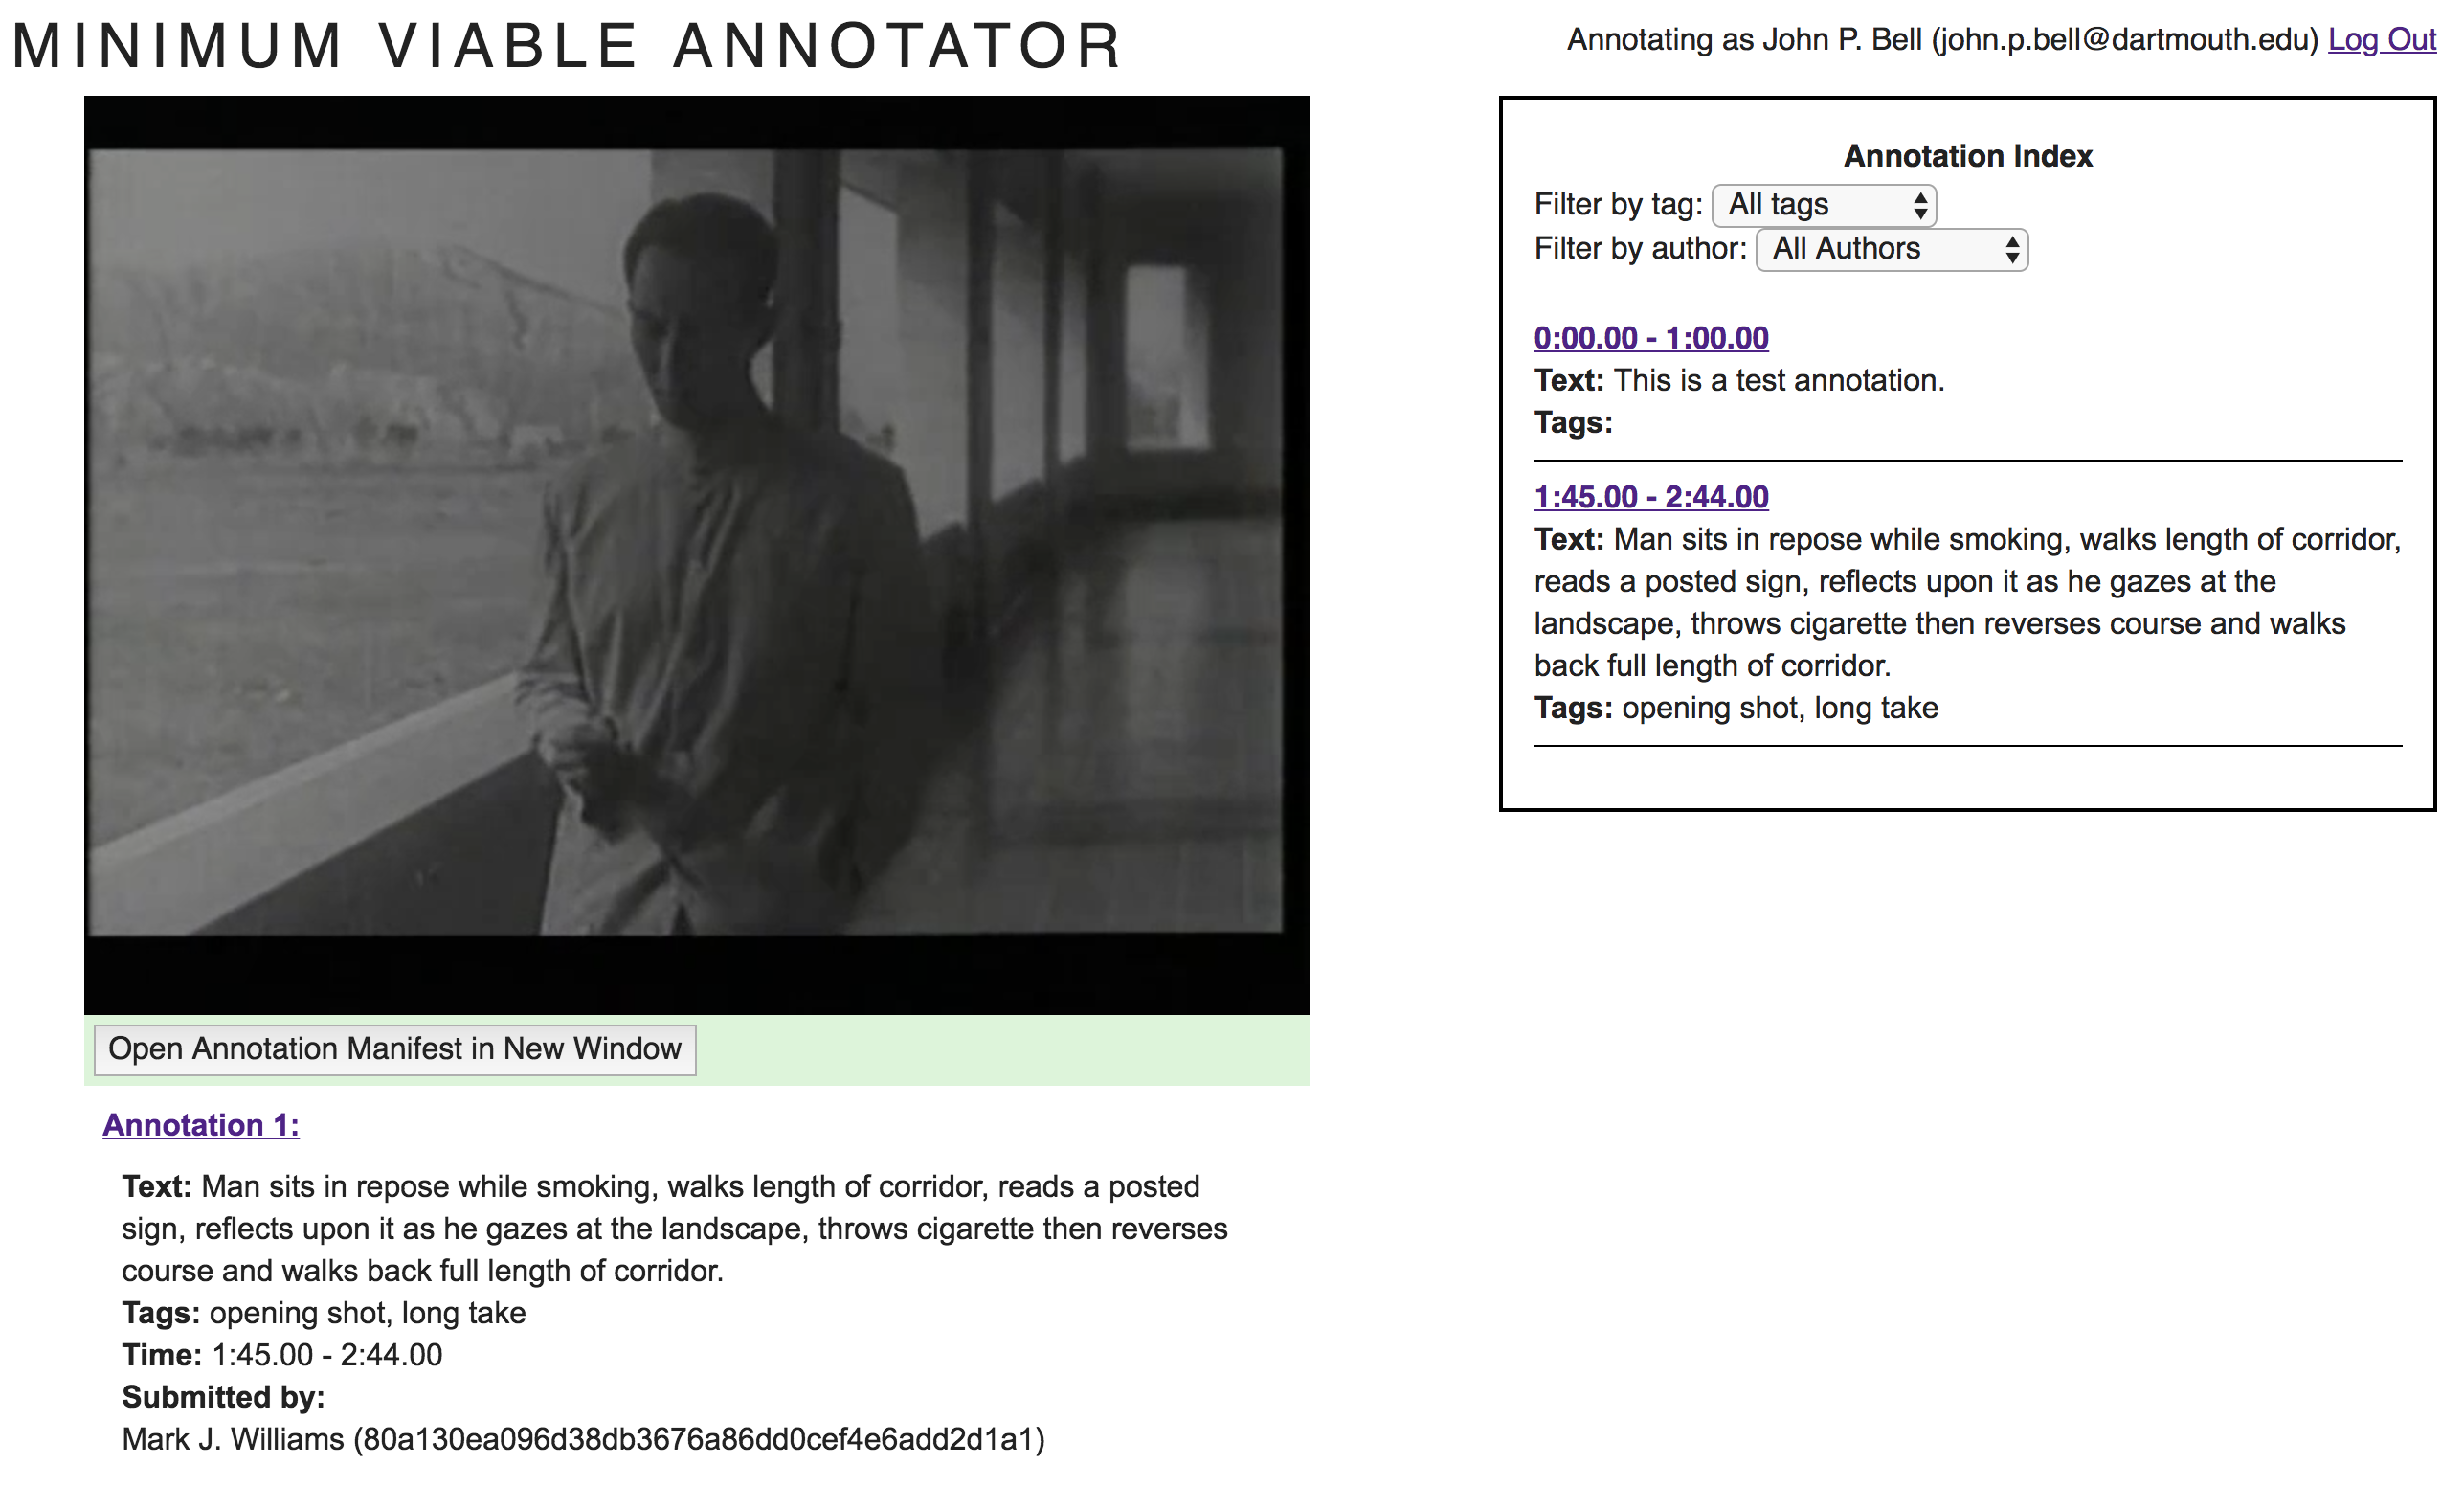 Onomy v1.2 Minimum Viable Annotator example